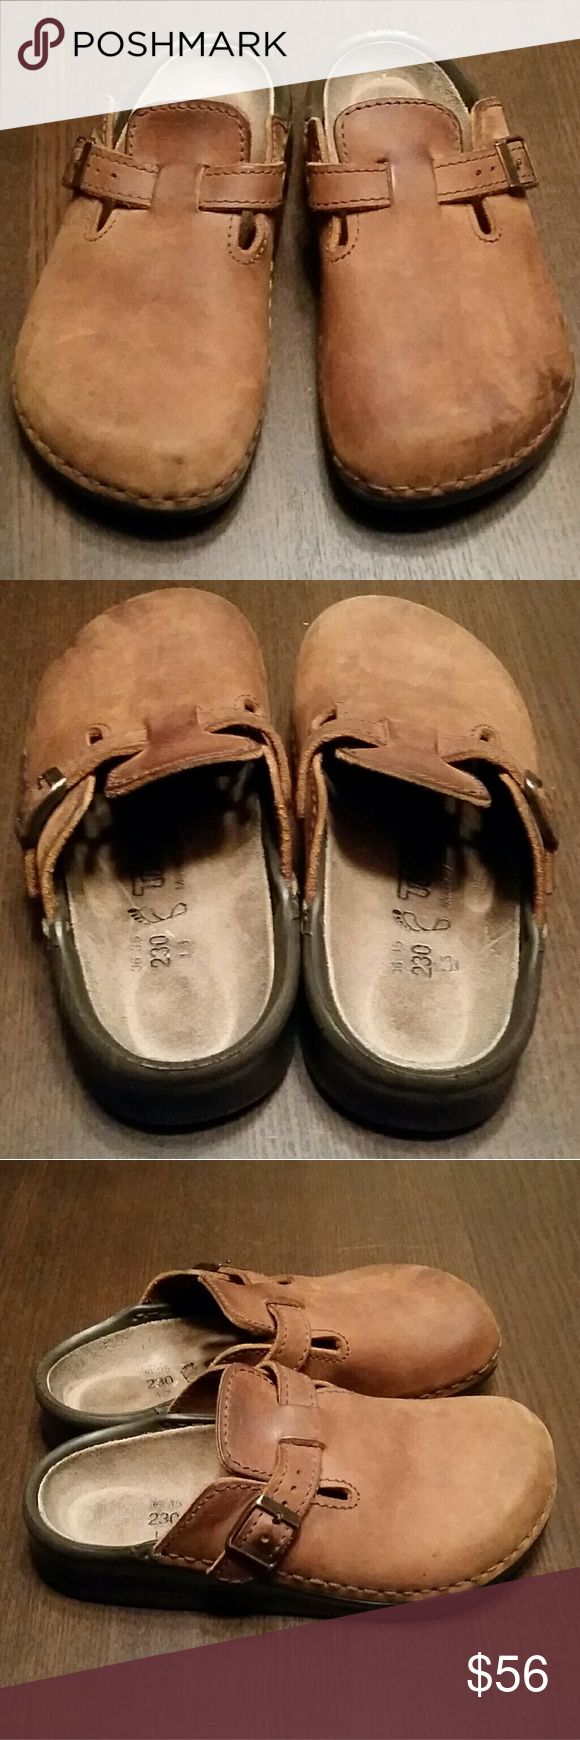 Tatami Birkenstocks 36 Tatami Birkenstocks size 36 in good lightly used condition. Shoes are in good repair with no issues just slight signs of usual wear. They were used for about 6 months sparingly in good weather. Birkenstock Shoes Flats & Loafers